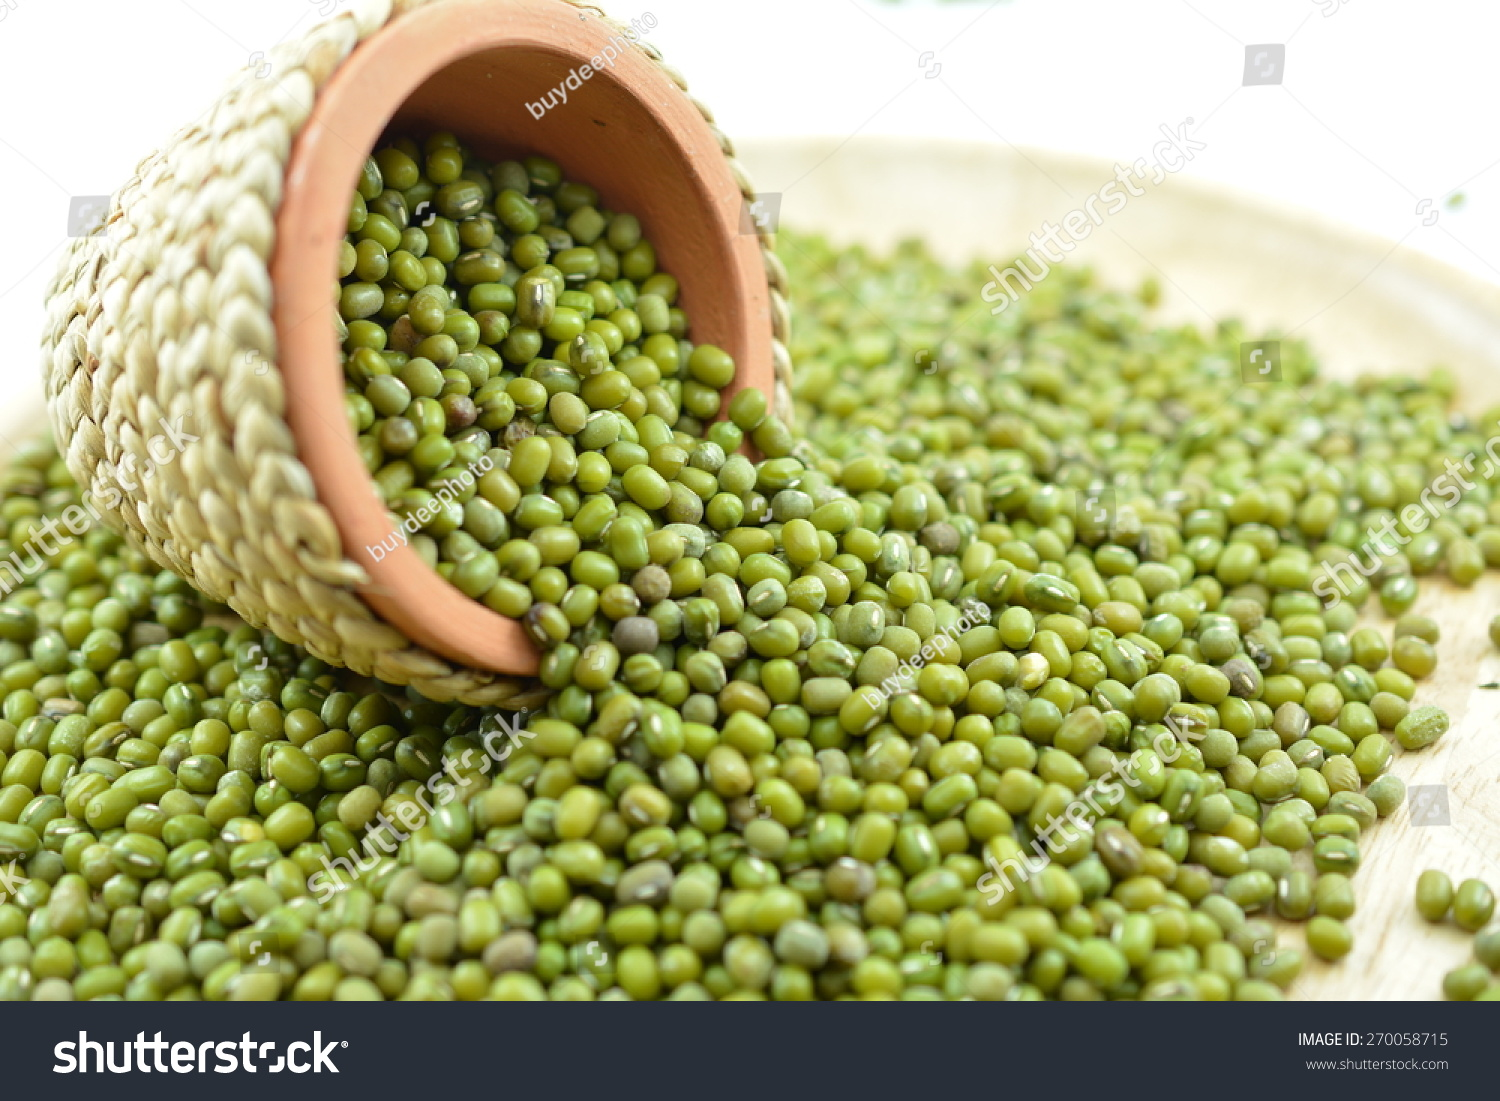 Bean plants. Plants of the legume family. Fruits of legumes 30